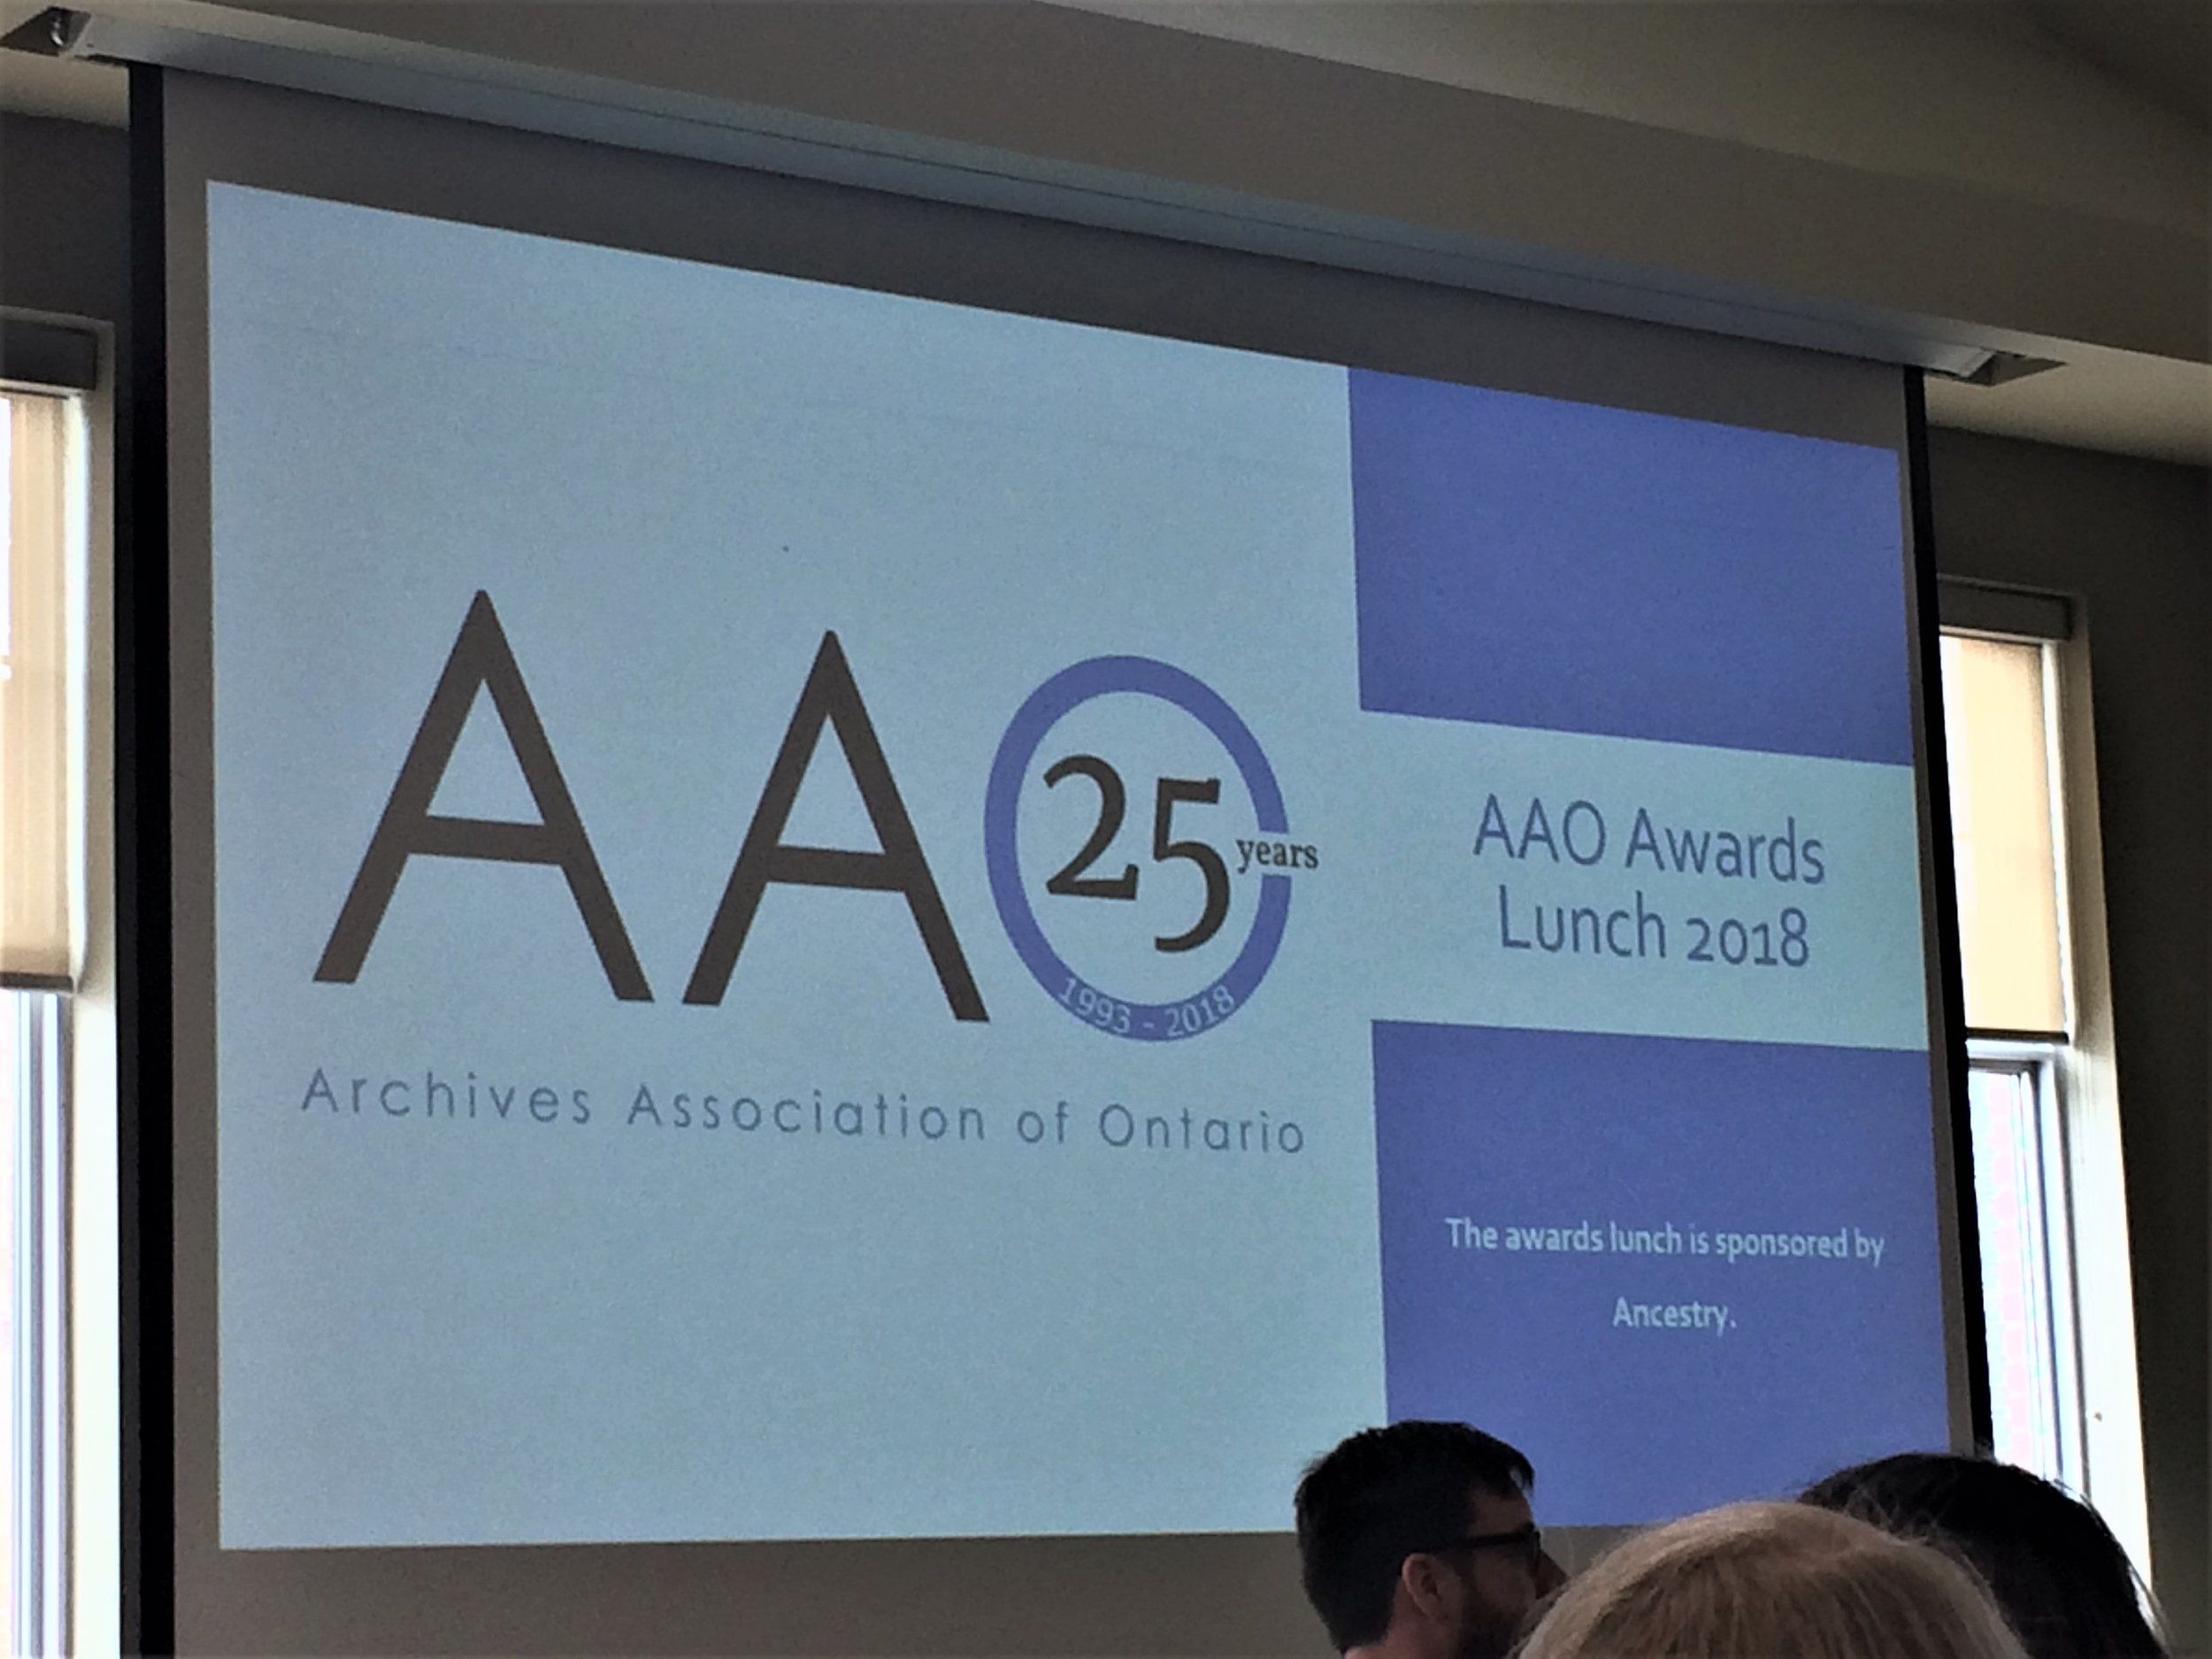 AAO Awards Luncheon